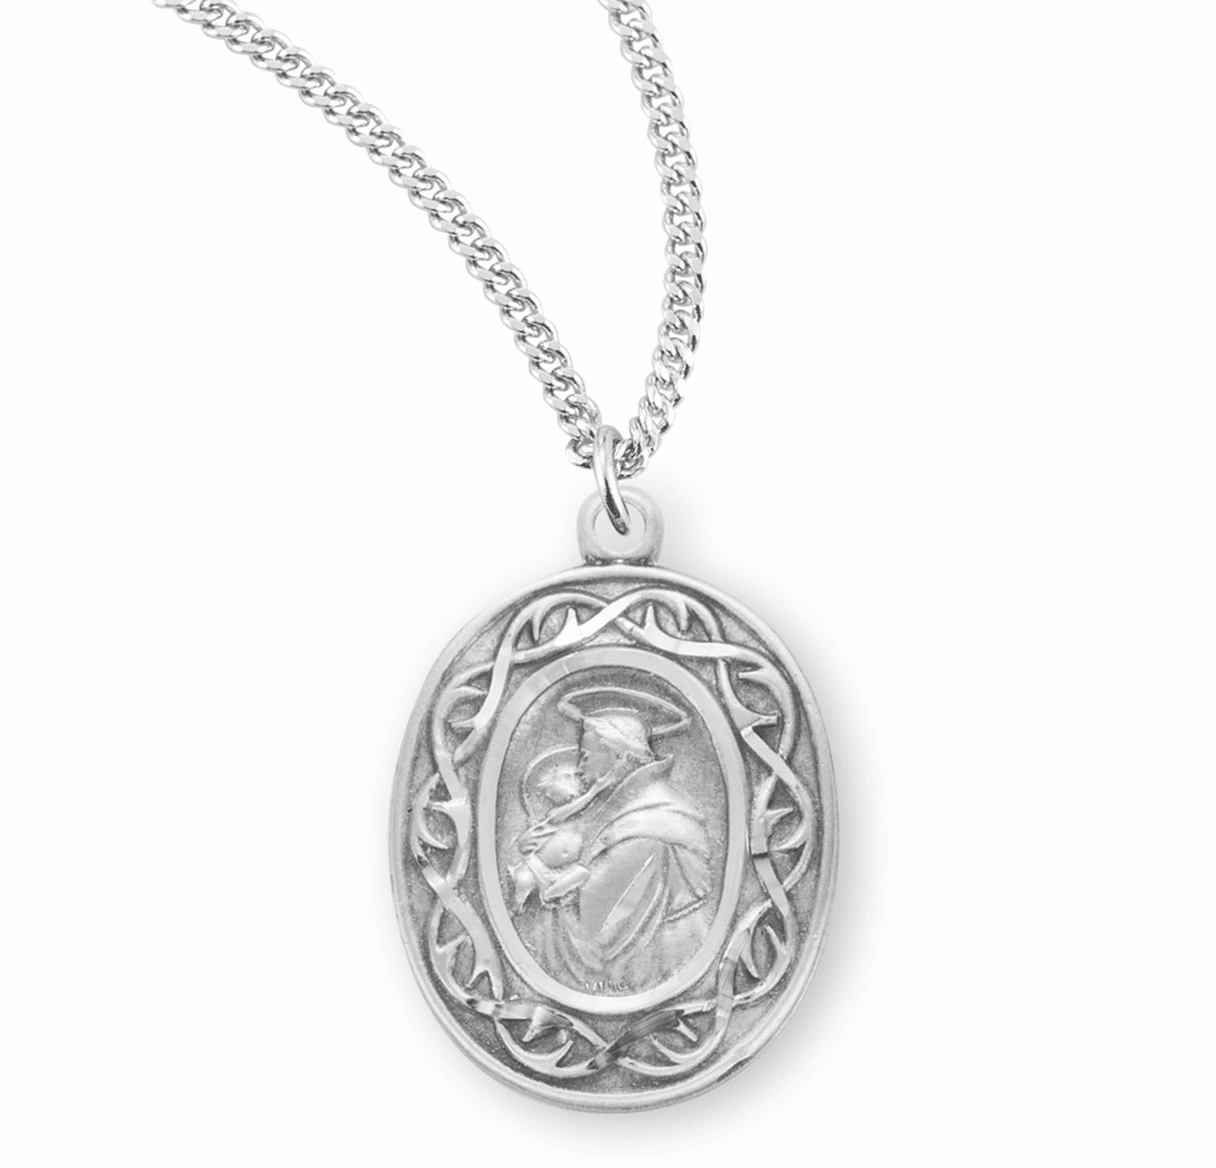 St Anthony Crown of Thorns Medal Necklace by HMH Religious